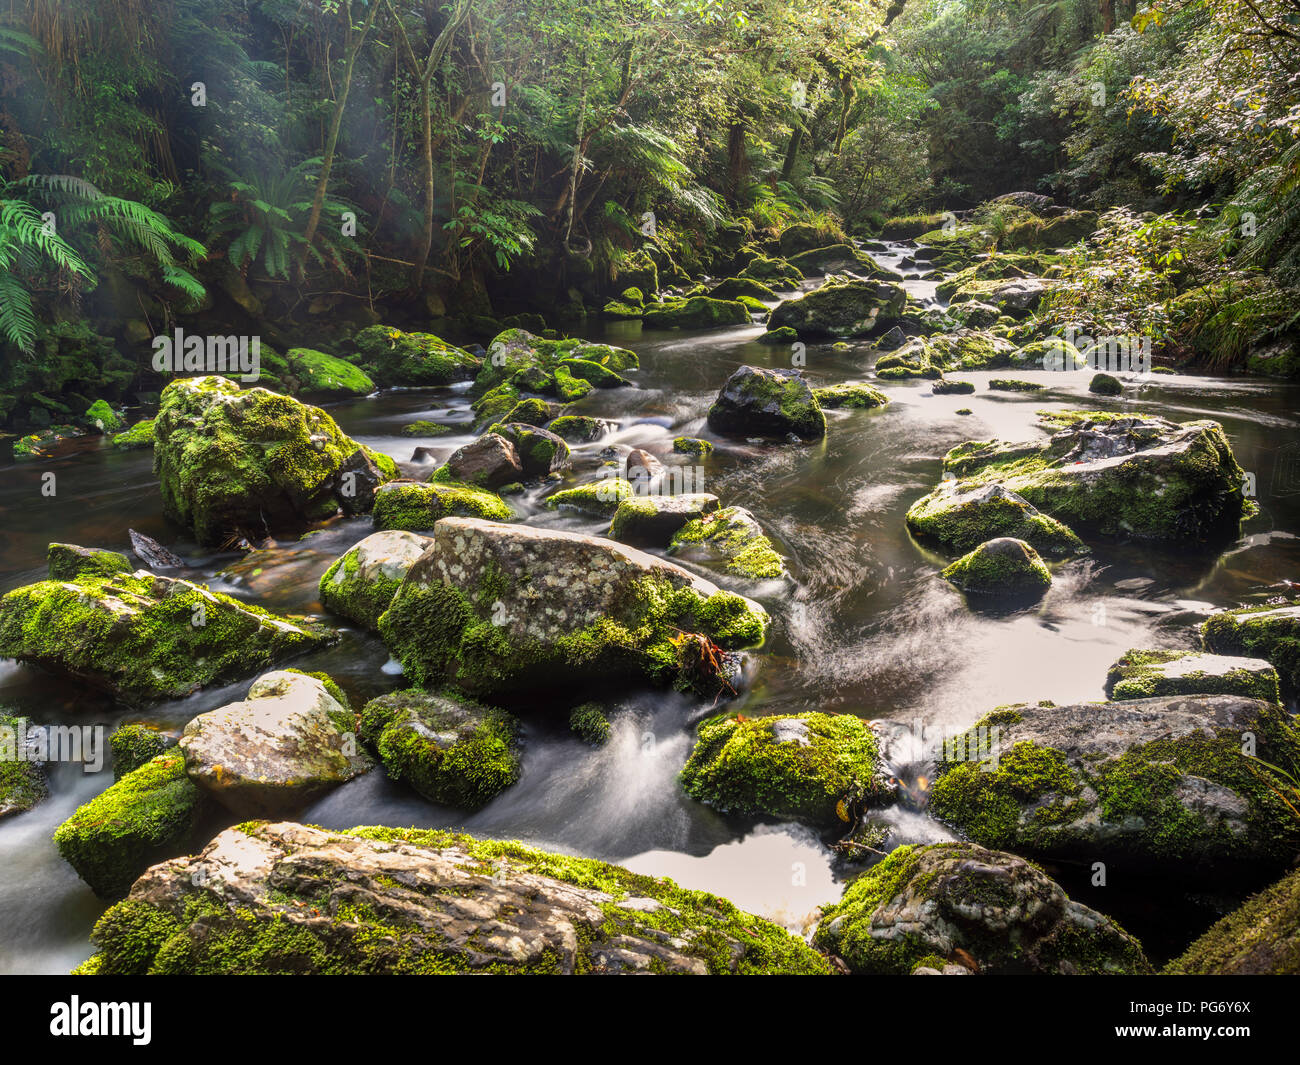 New Zealand, South Island, Tautuku River at Catlins Forest Park - Stock Image